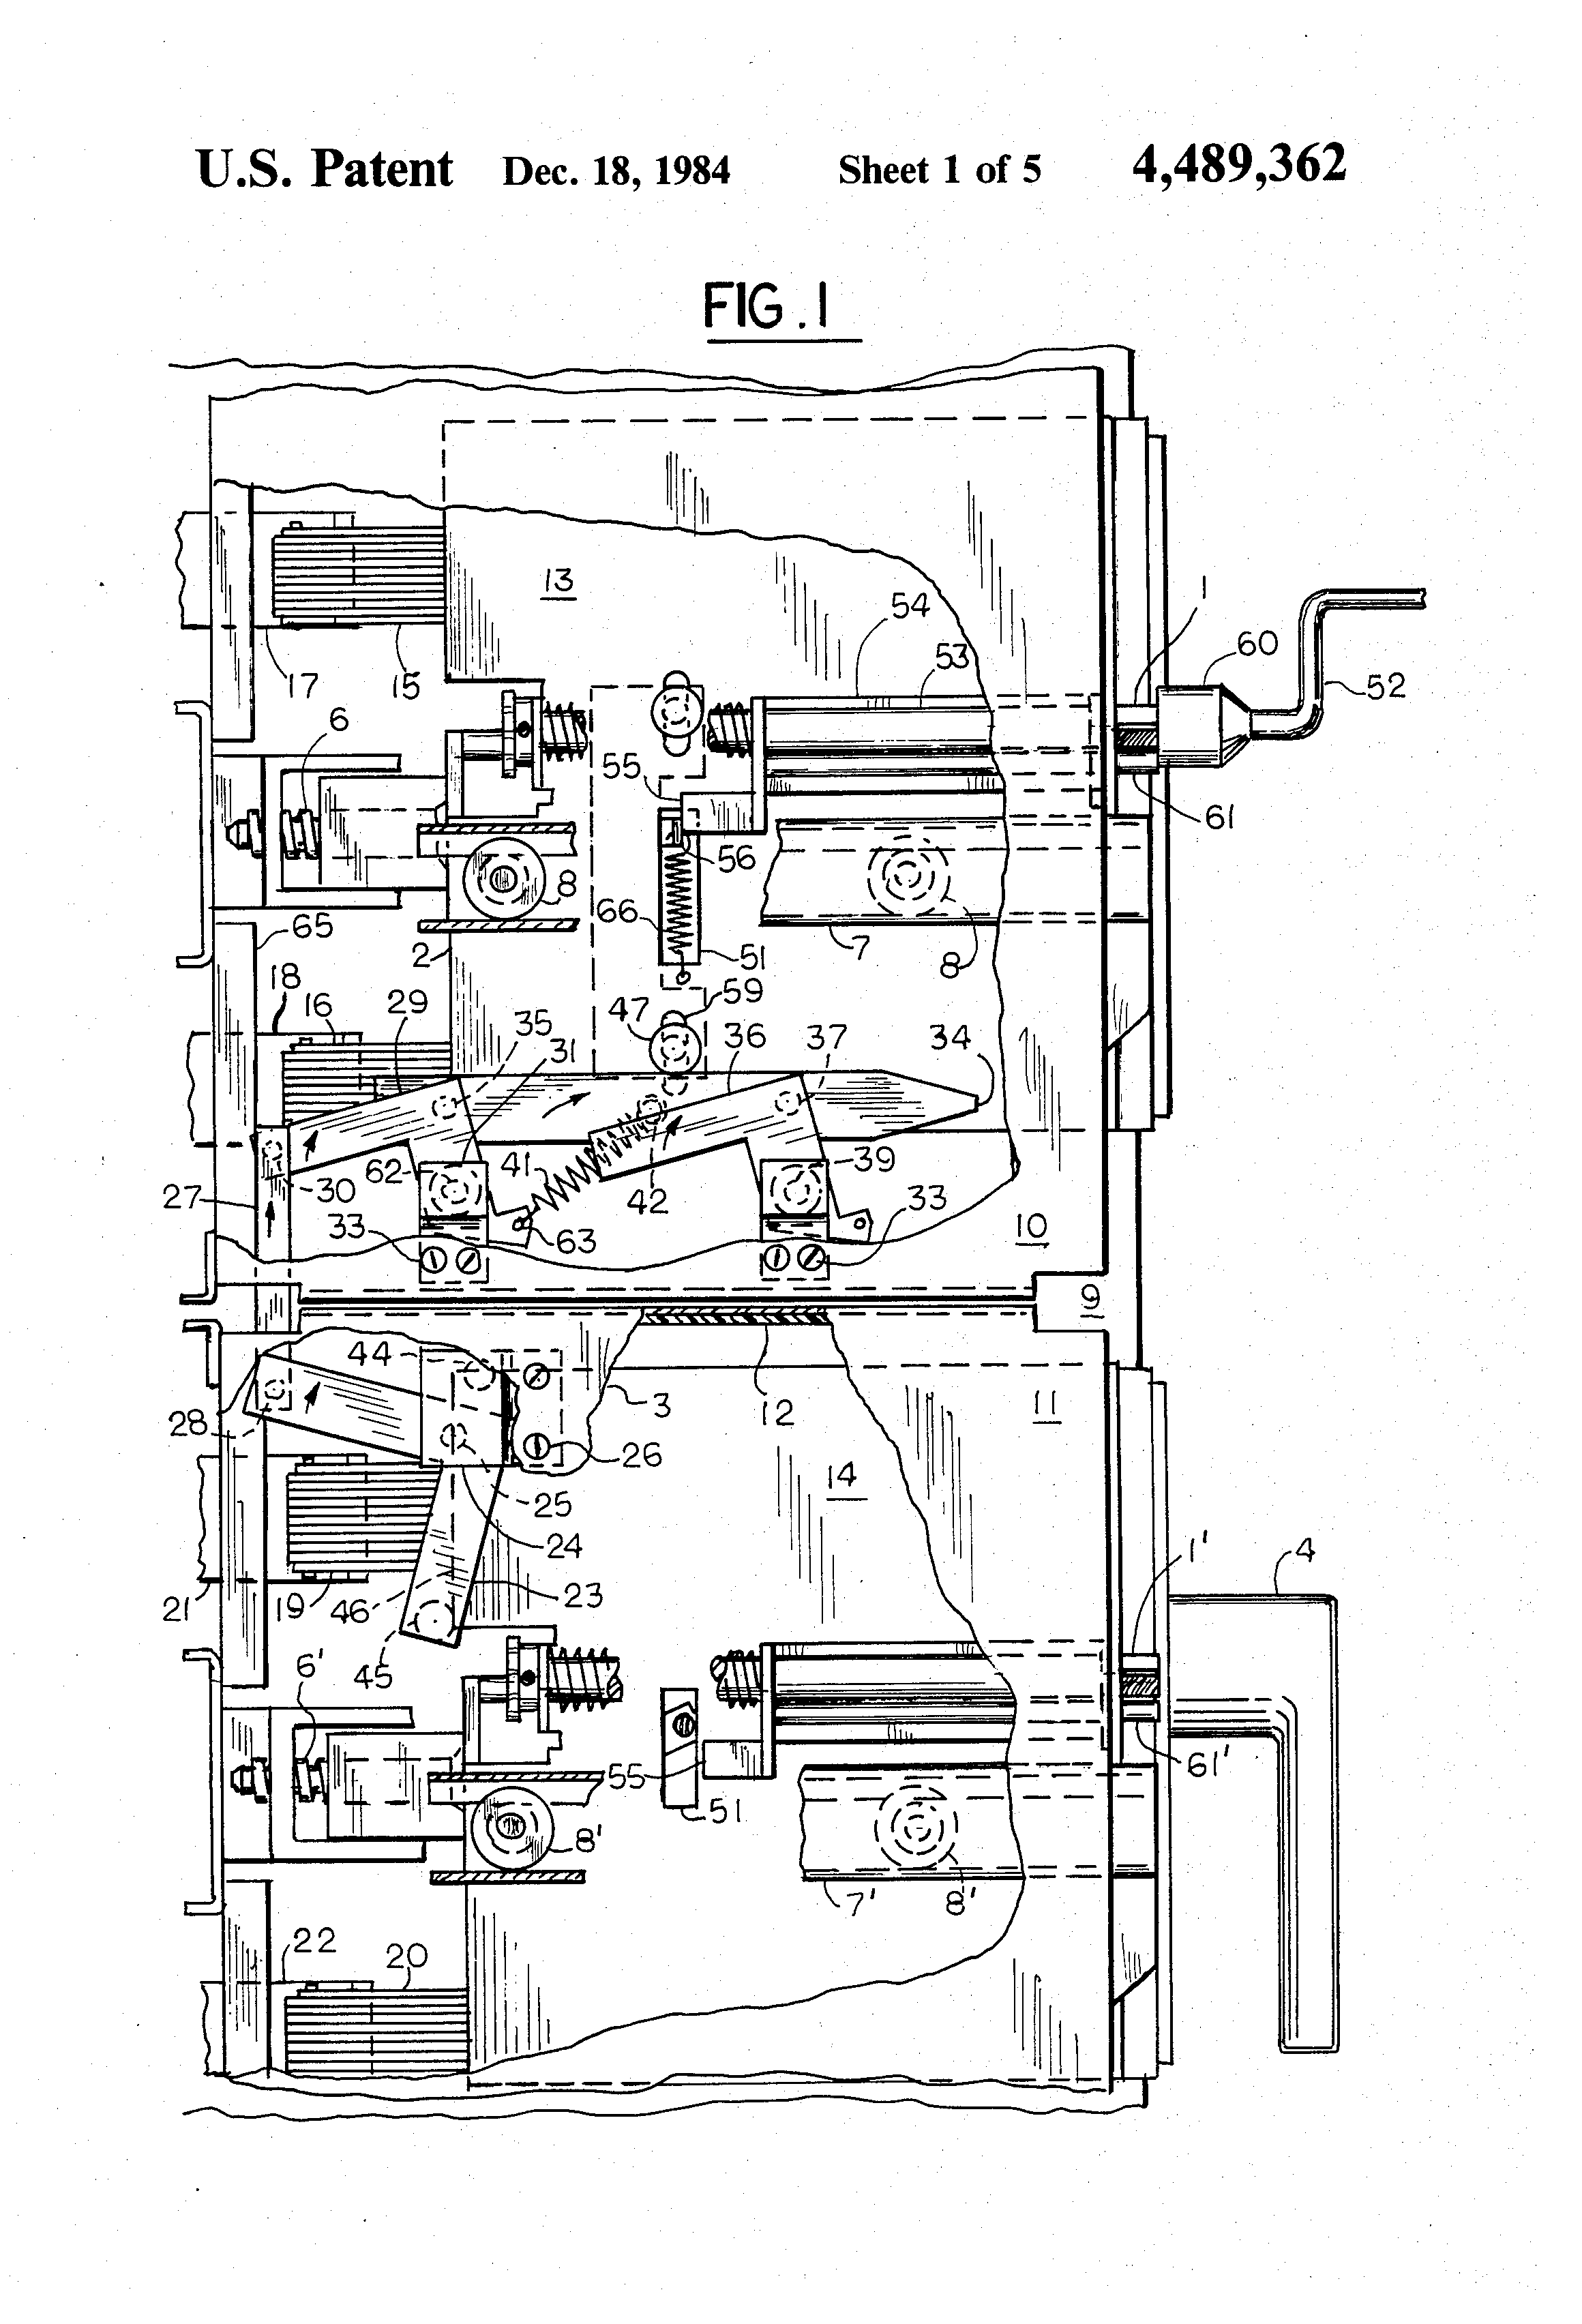 patent us4489362 - electric switchboard apparatus with a breaker-fuse interlock